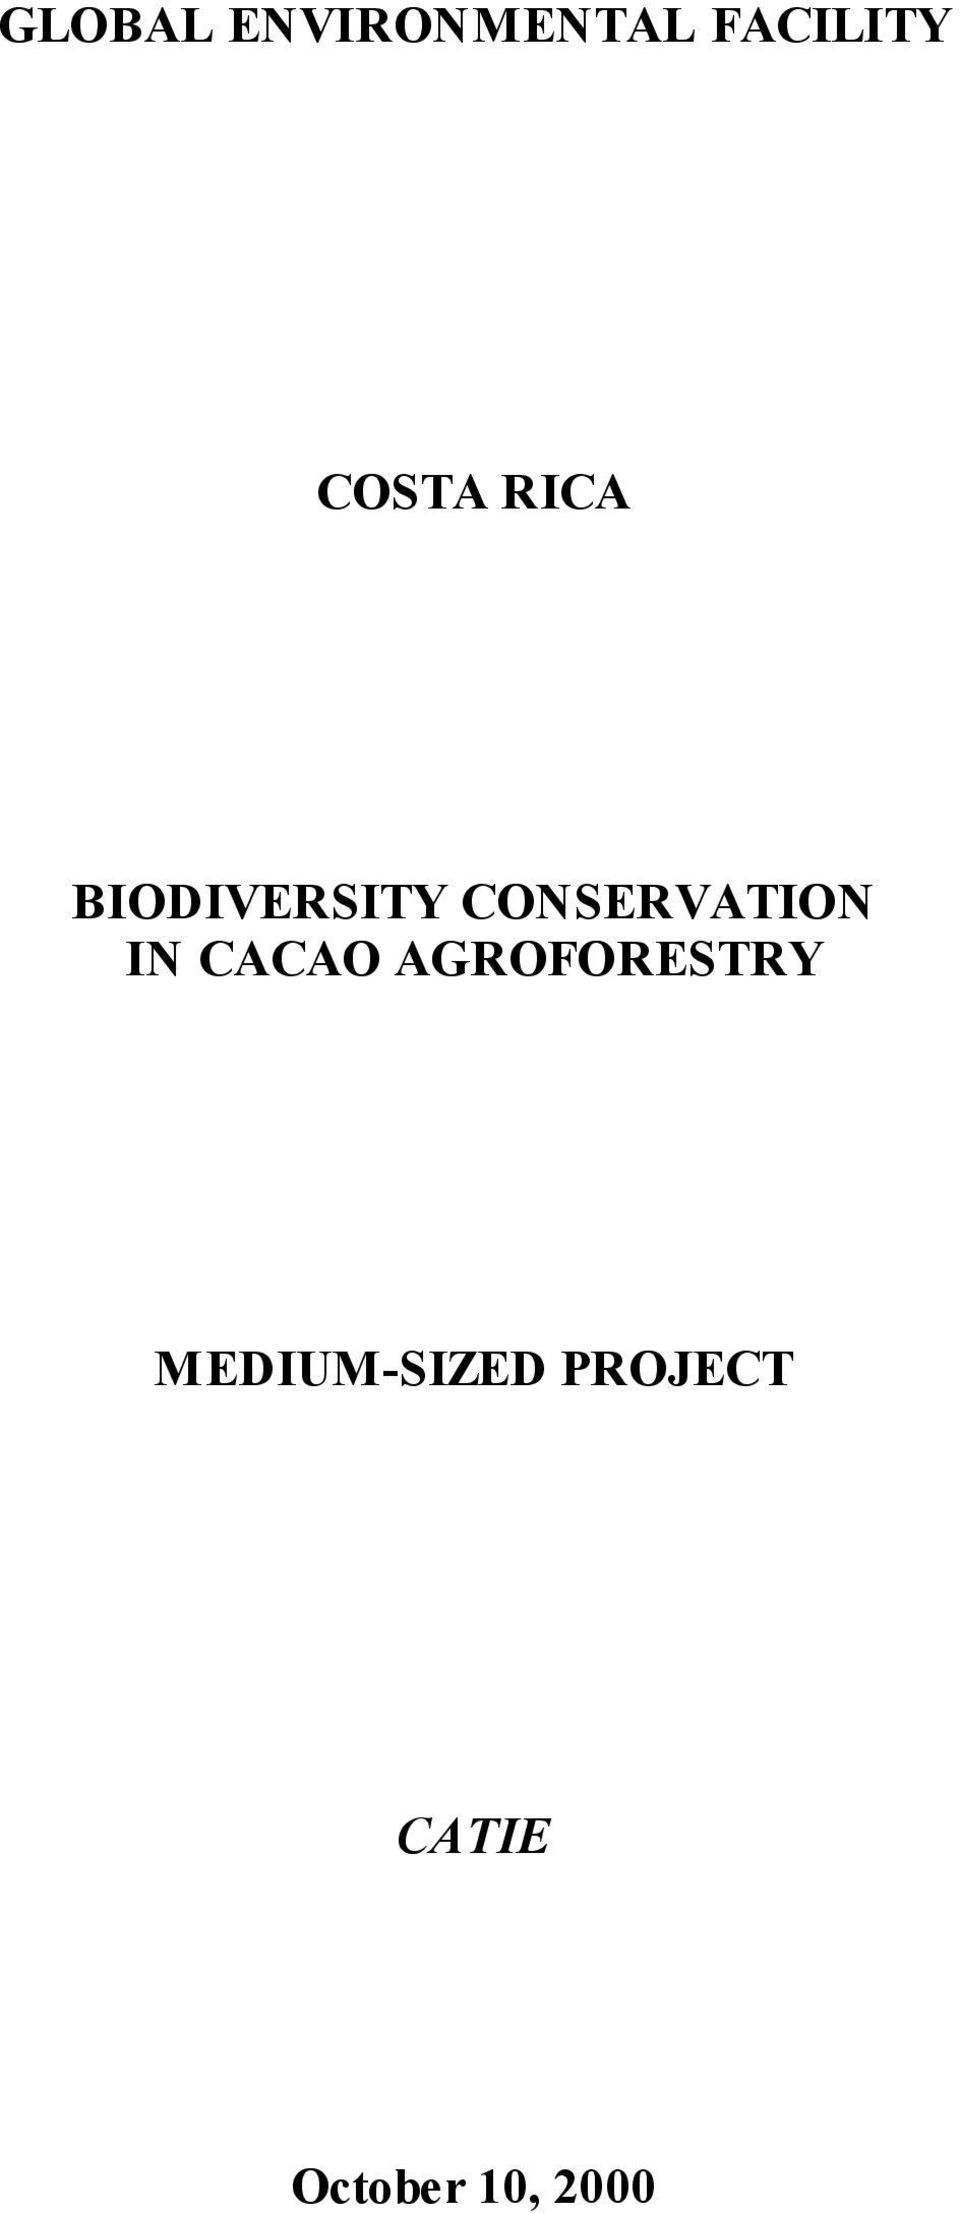 CONSERVATION IN CACAO